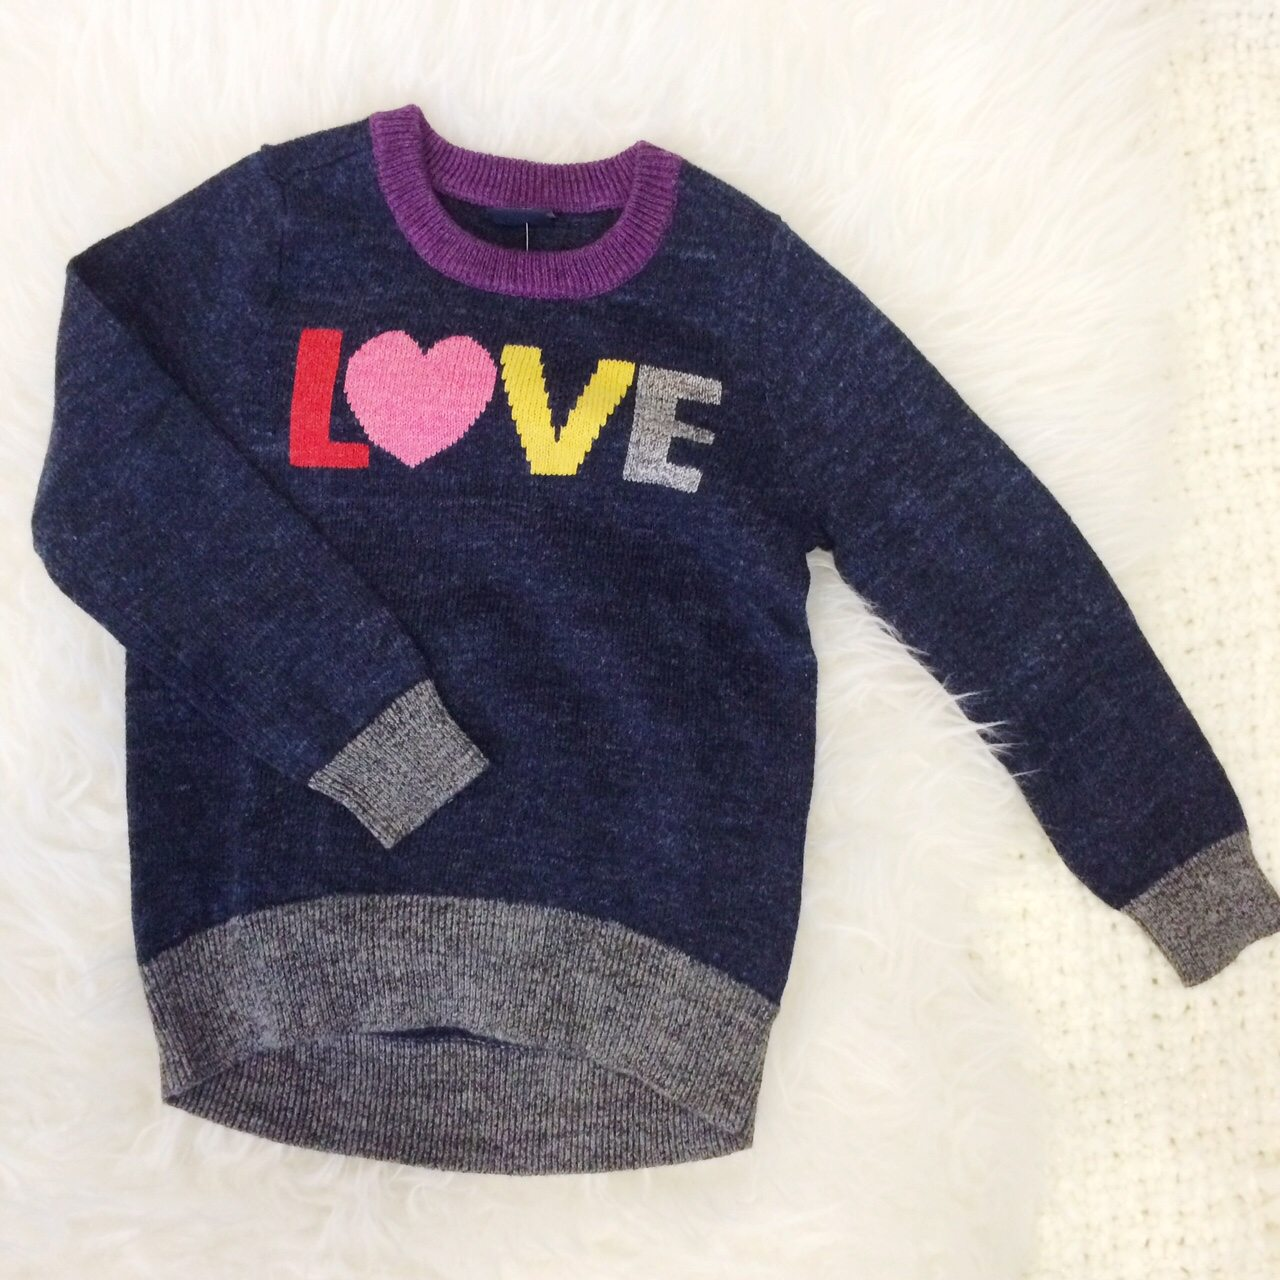 b9845347e5034 Baby & Toddler Purchases: Baby Gap, Zara & Joe Fresh - Veronika's ...